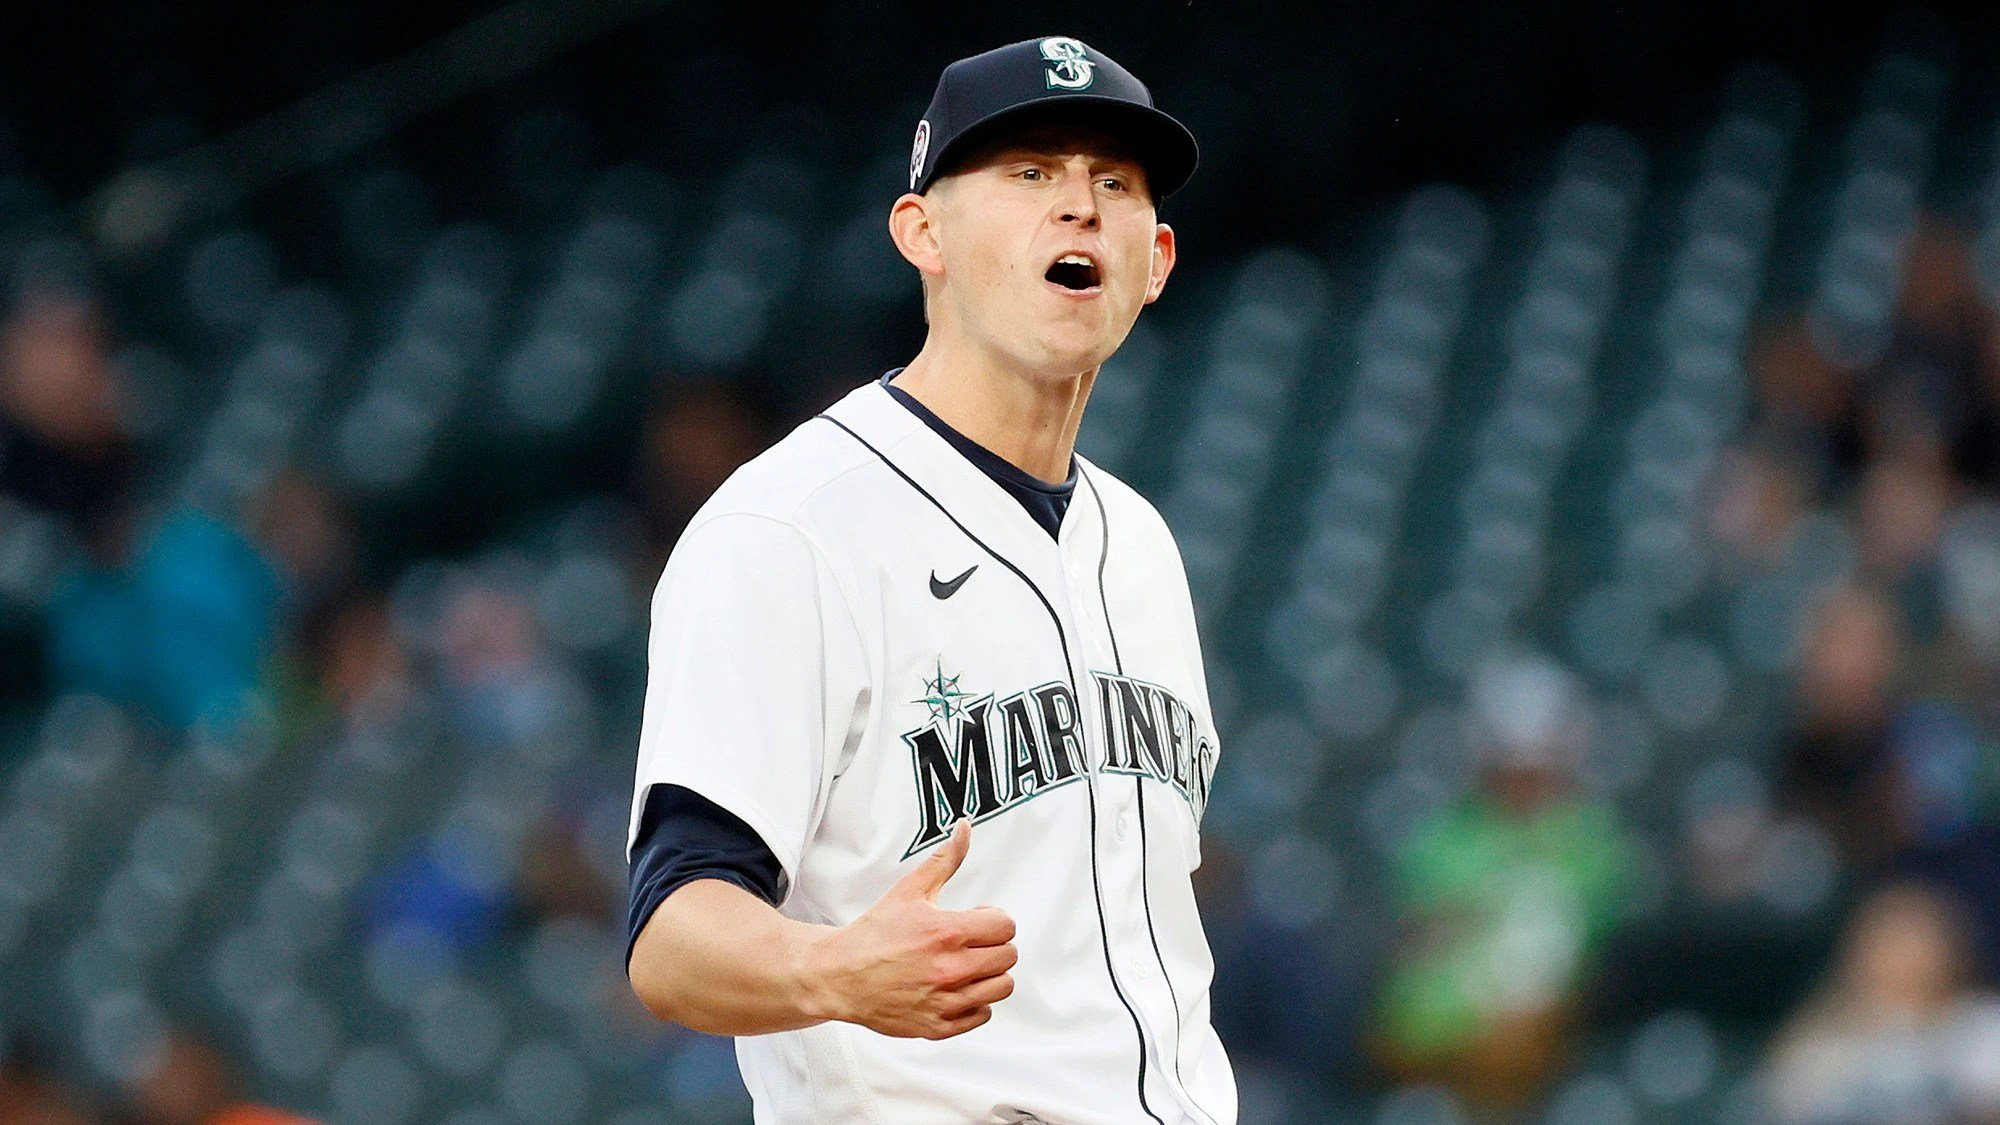 Oakland A's vs Seattle Mariners Preview: Seattle Seeks to Maintain Mastery of A's and Boost Wild Card Chances